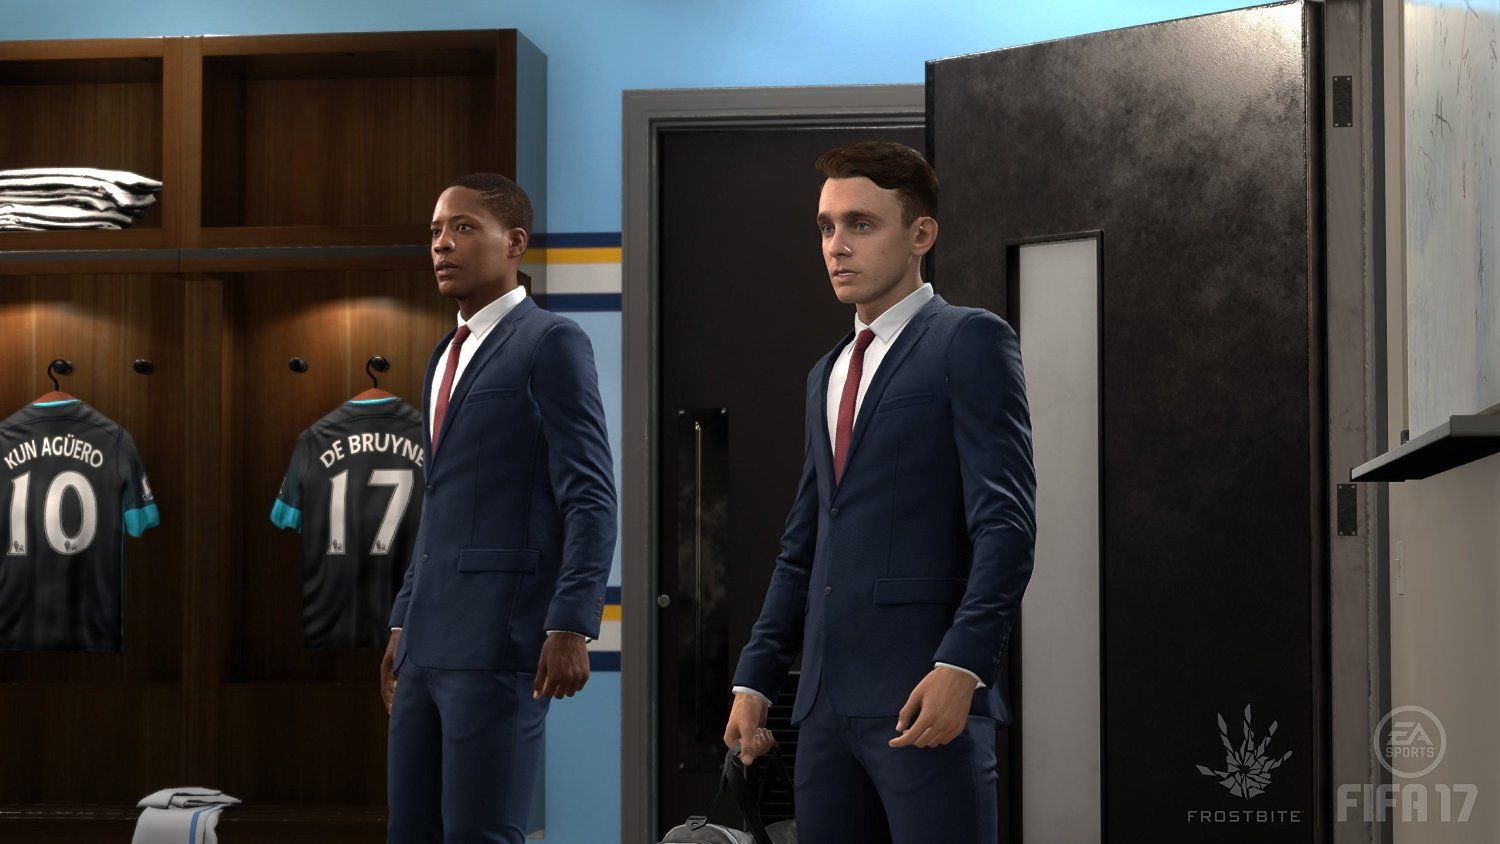 FIFA 17 Deluxe Edition (Xbox One) - 4